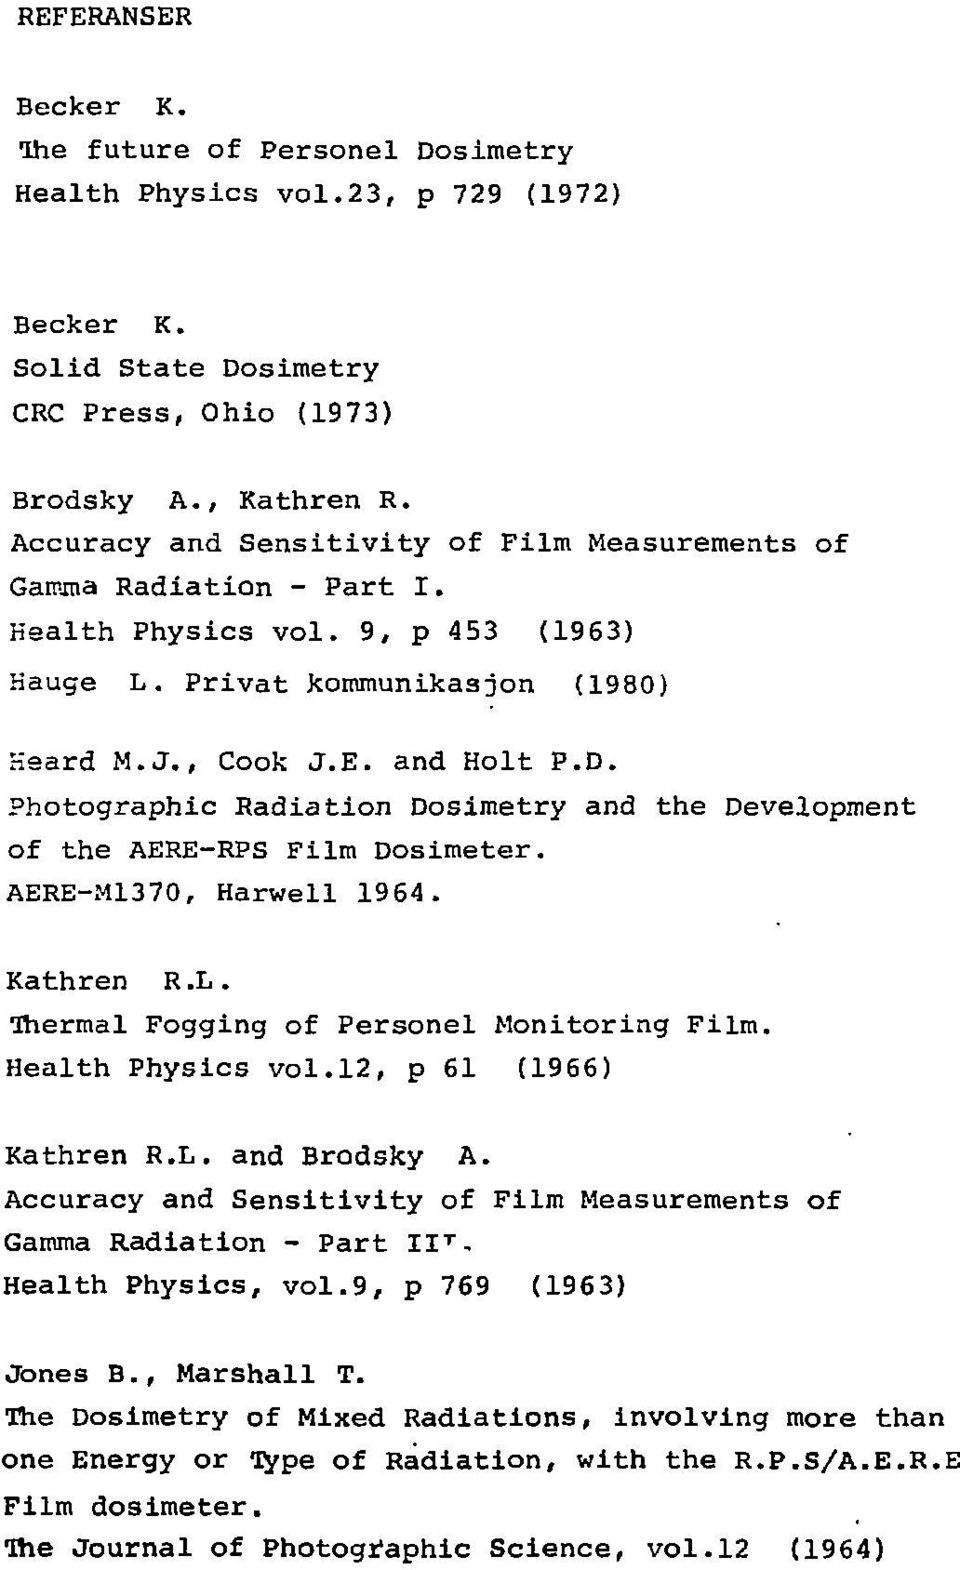 Photographic Radiation Dosimetry and the Development of the AERE-RPS Film Dosimeter. AERE-M1370, Harwell 1964. Kathren R.L. thermal Fogging of Personel Monitoring Film. Health Physics vol.